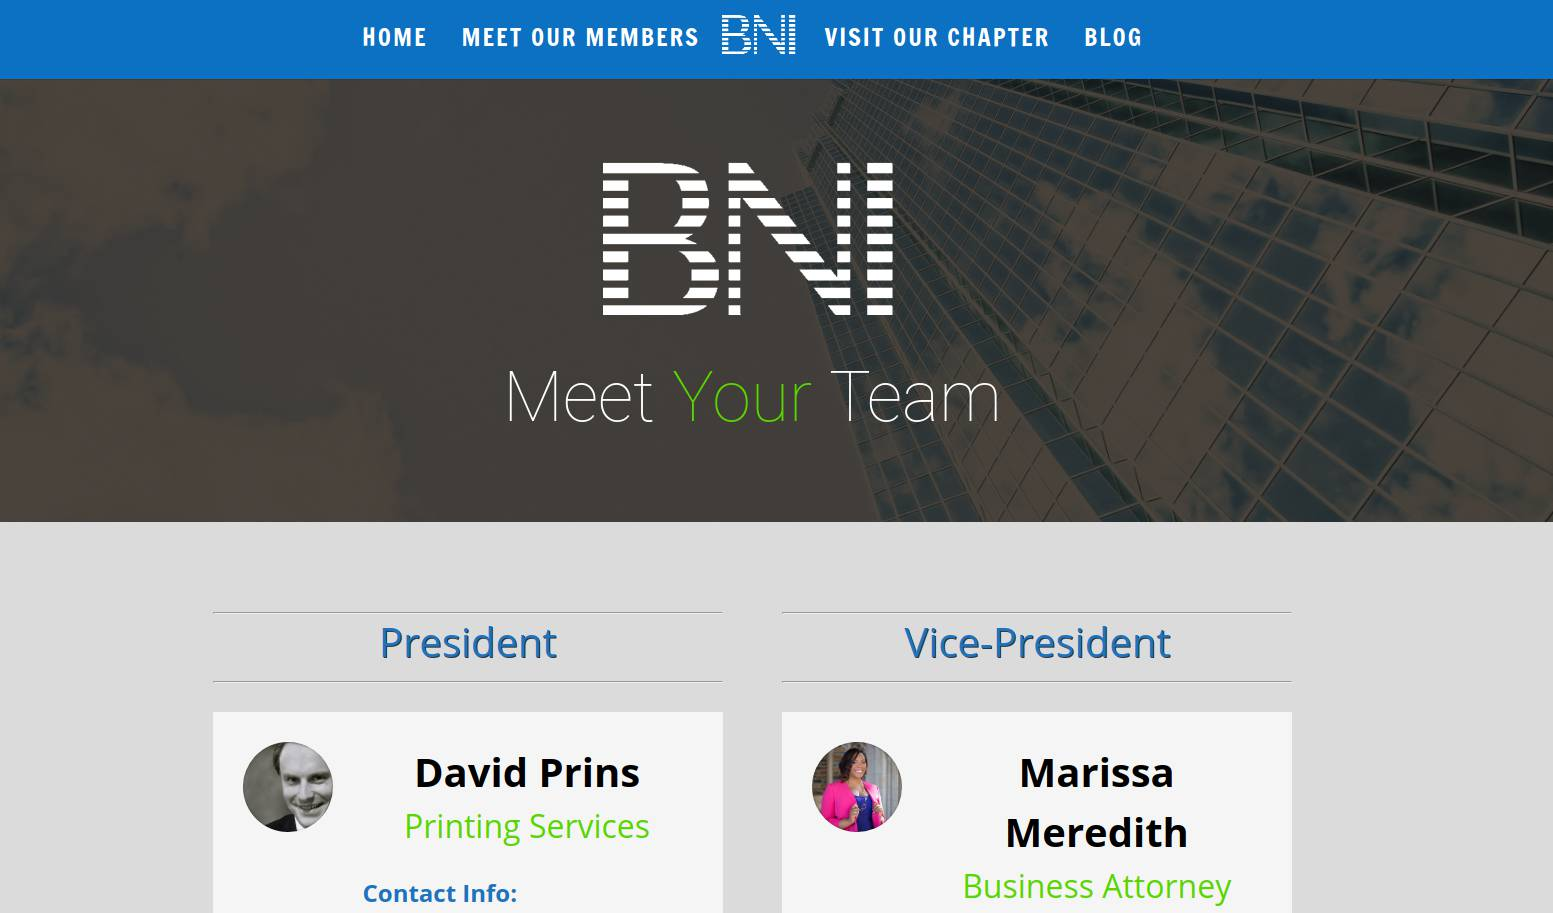 durham-bni-nc-meet-team